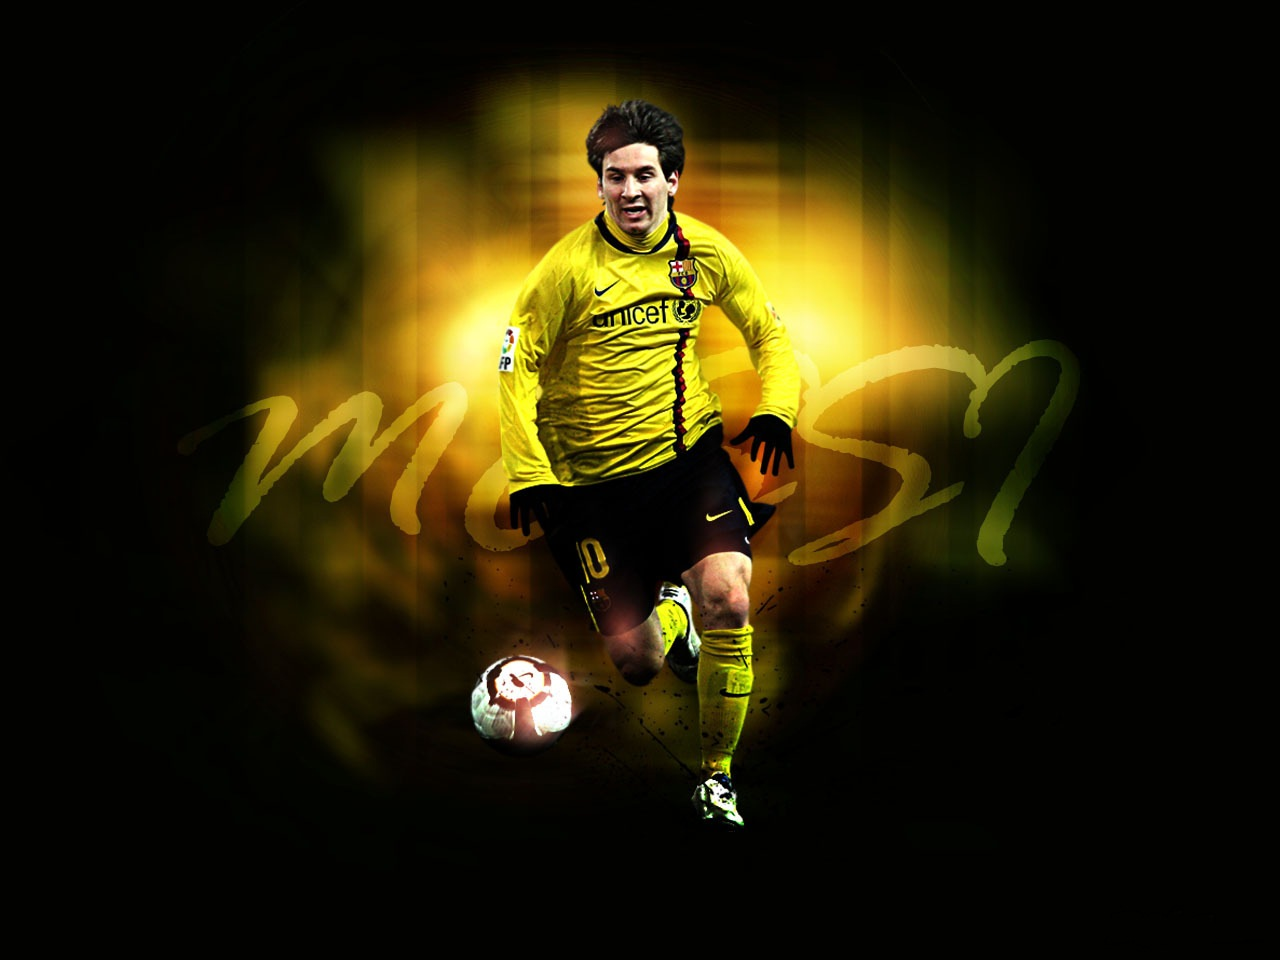 Football Super Star Player: Lionel Messi New HD Wallpapers ...